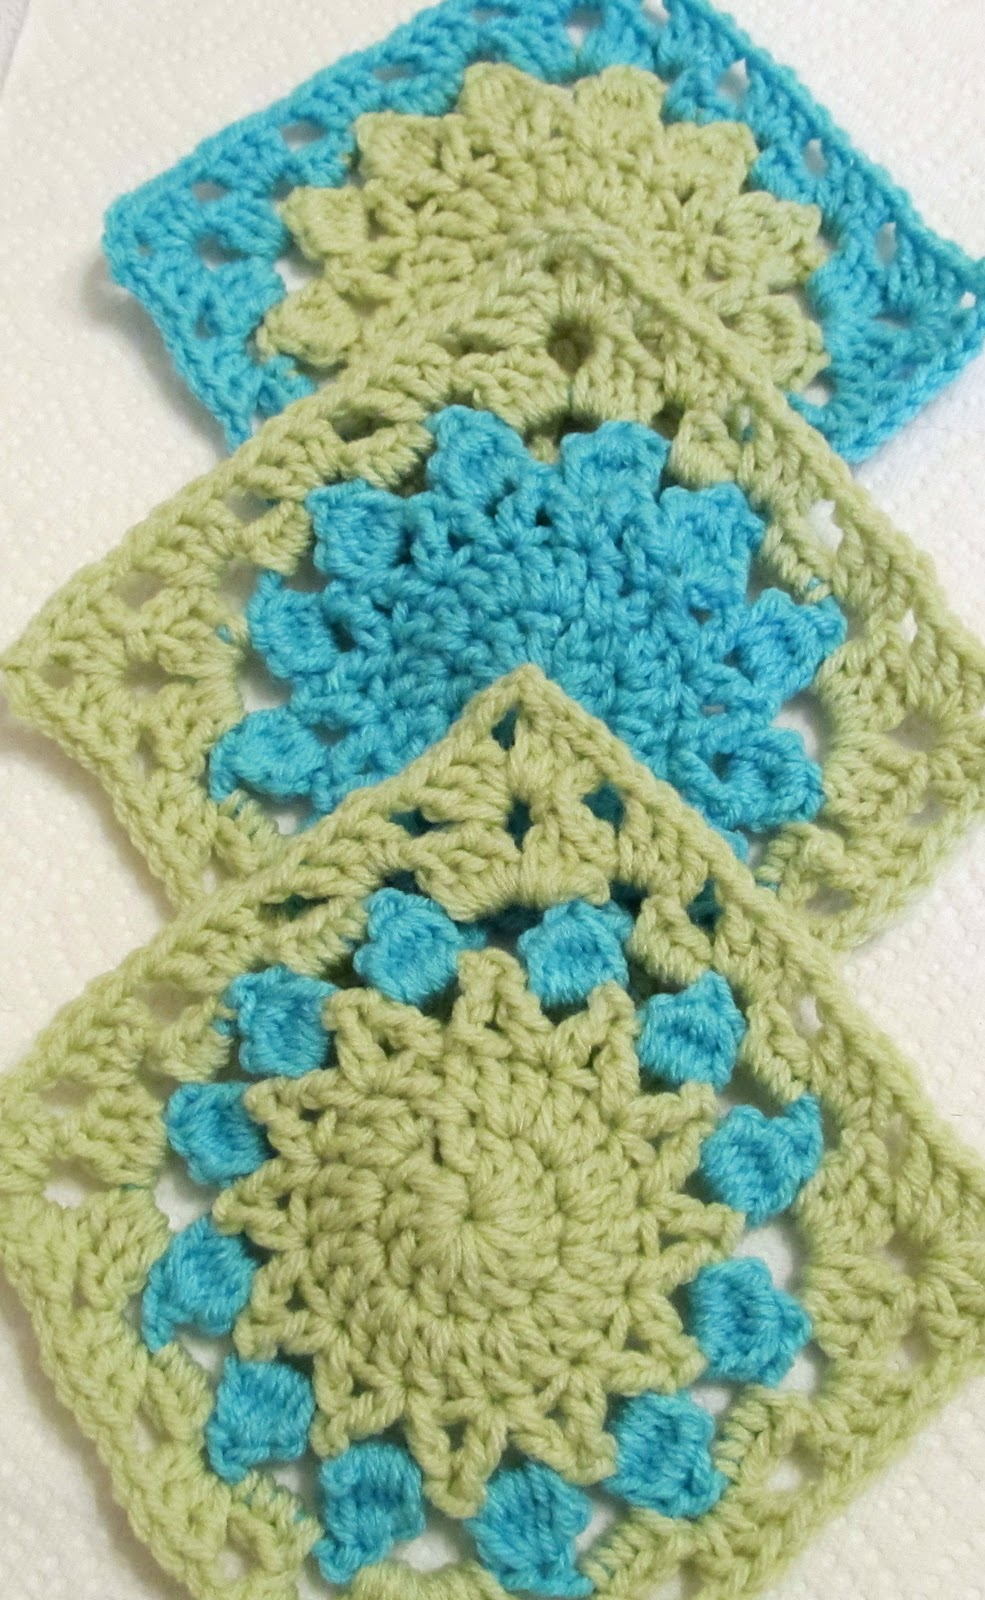 Crochet For Charity : AngelCrafts - Crocheting for Charity ~ Free Patterns